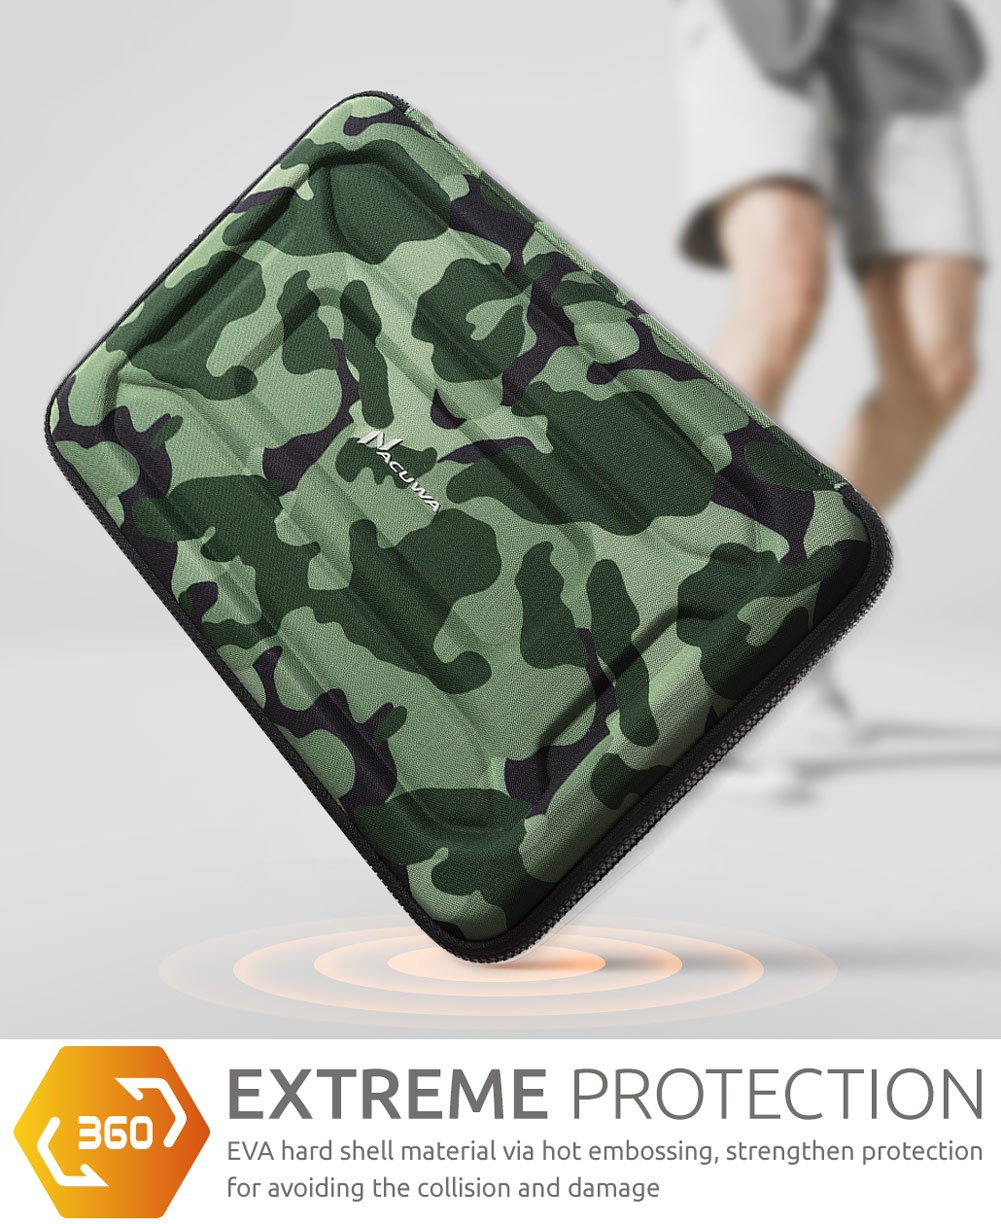 Protective Laptop Case: 13 - 13.3 Inch Computer Carrying Sleeve for 2018 New Macbook Air, Pro, Microsoft Surface or Chromebook - Padded, Waterproof and Shockproof Hard Lap Top Cover Cases - Camo by Nacuwa (Image #3)